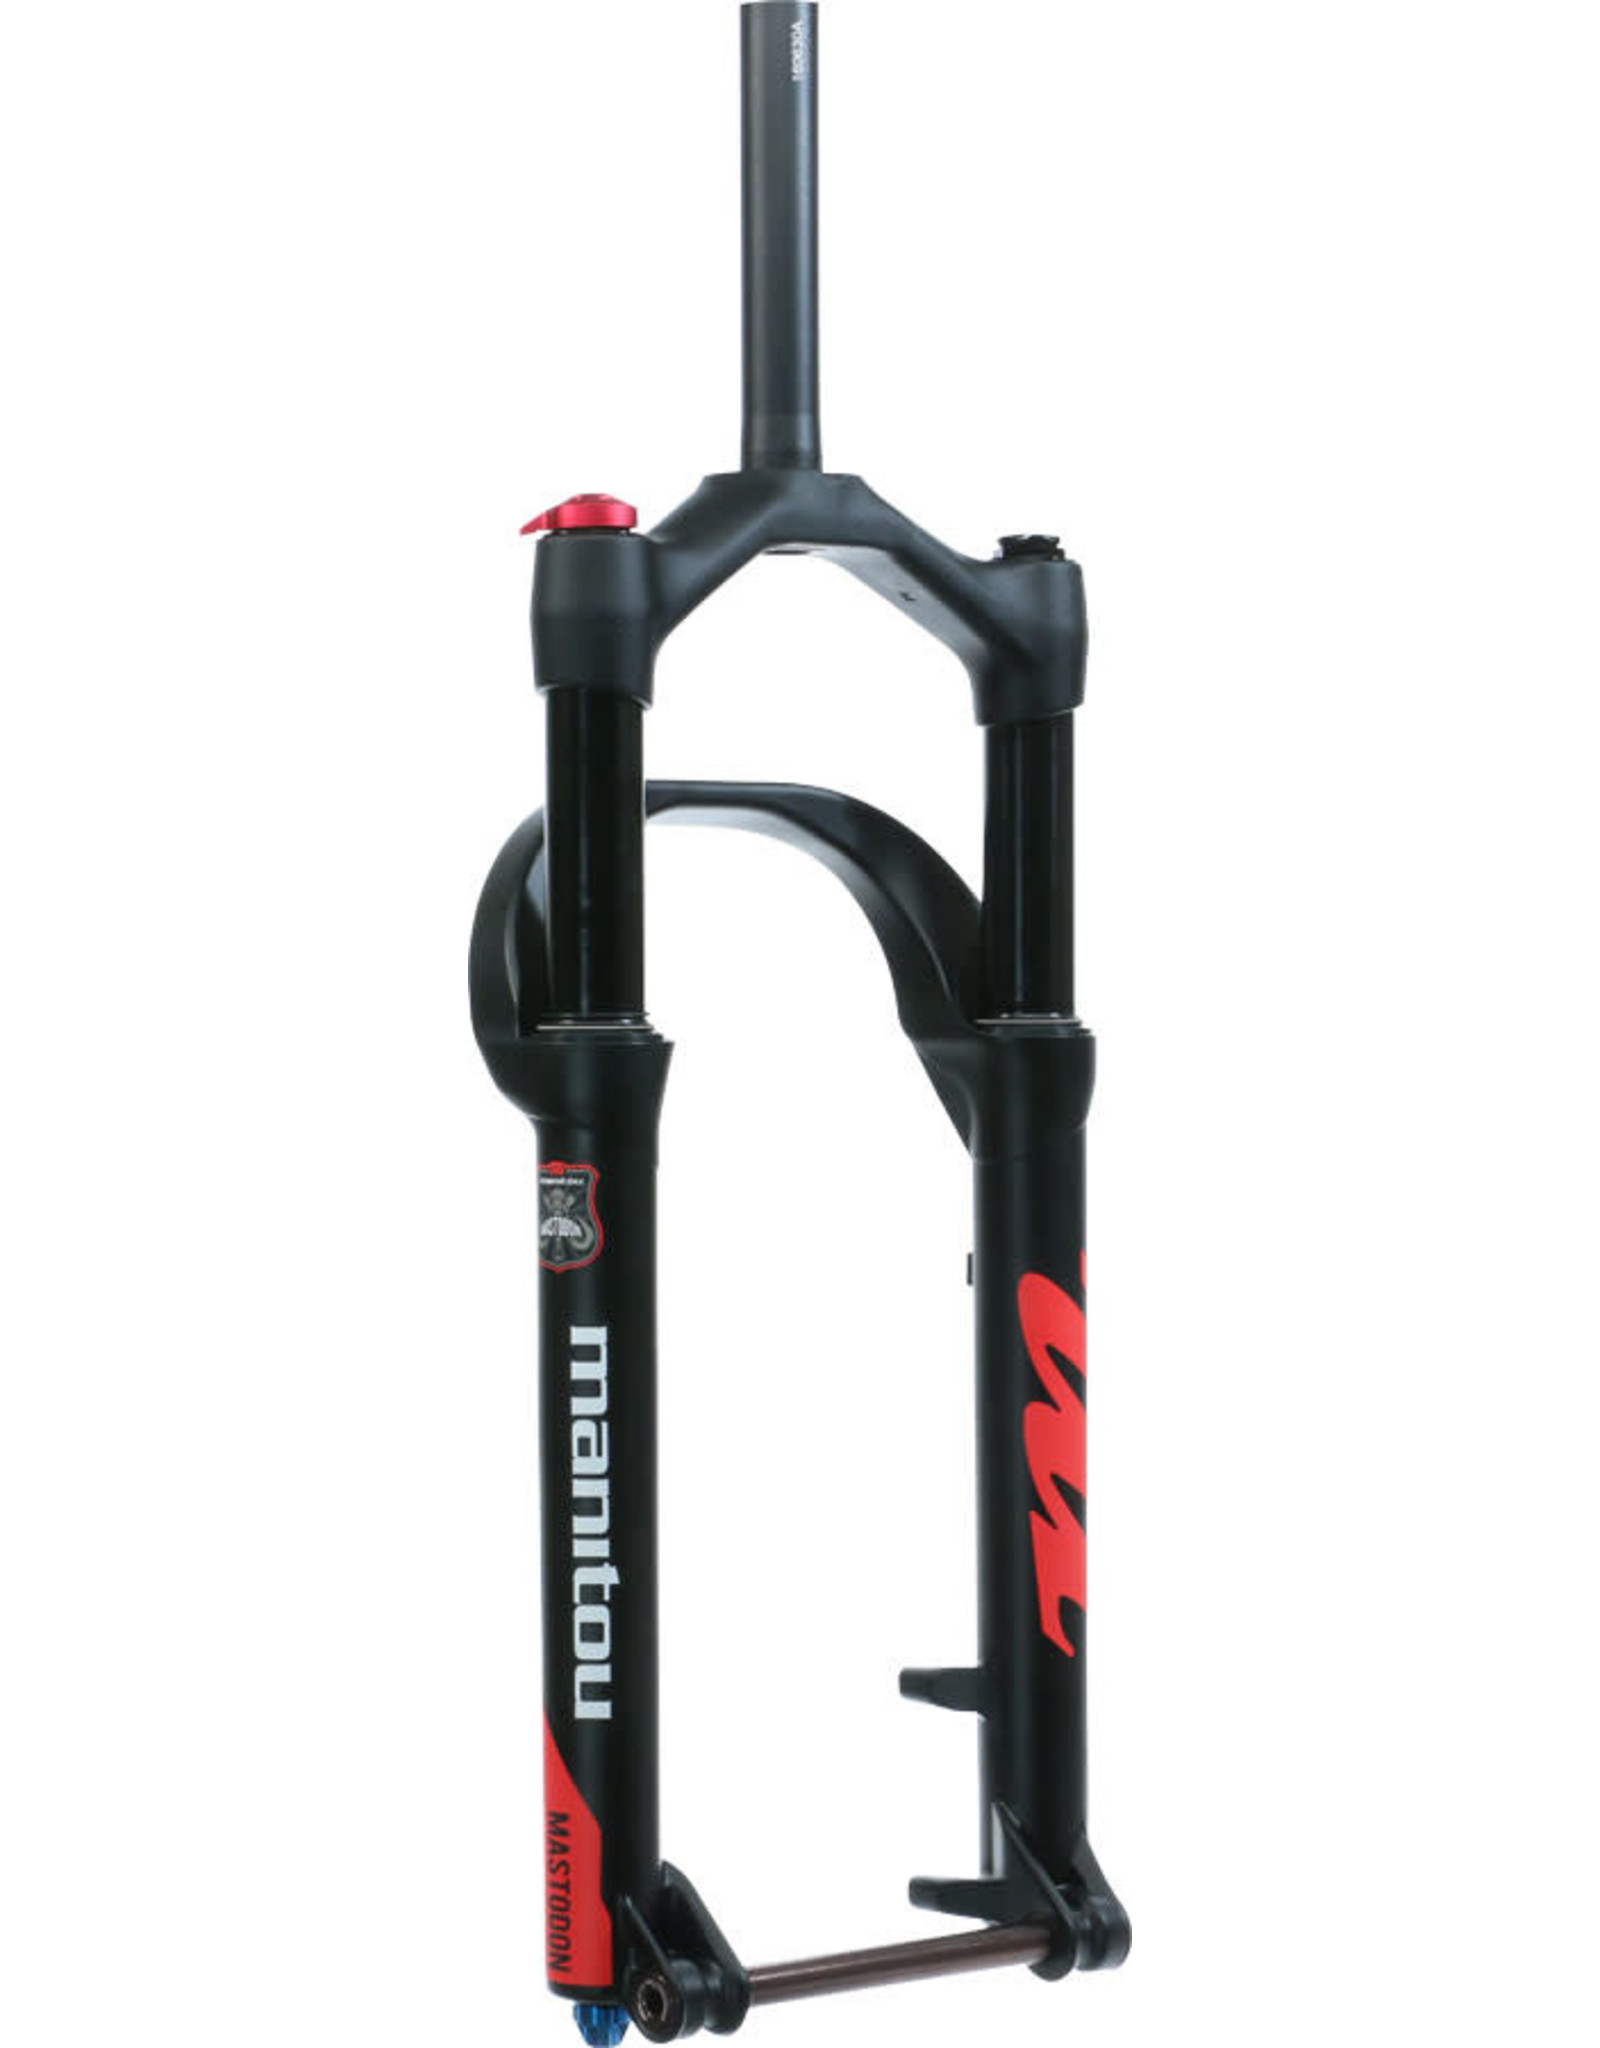 "Manitou Mastodon Comp Suspension Fork - 26"", 100 mm, 15 x 150 mm, 51 mm Offset"